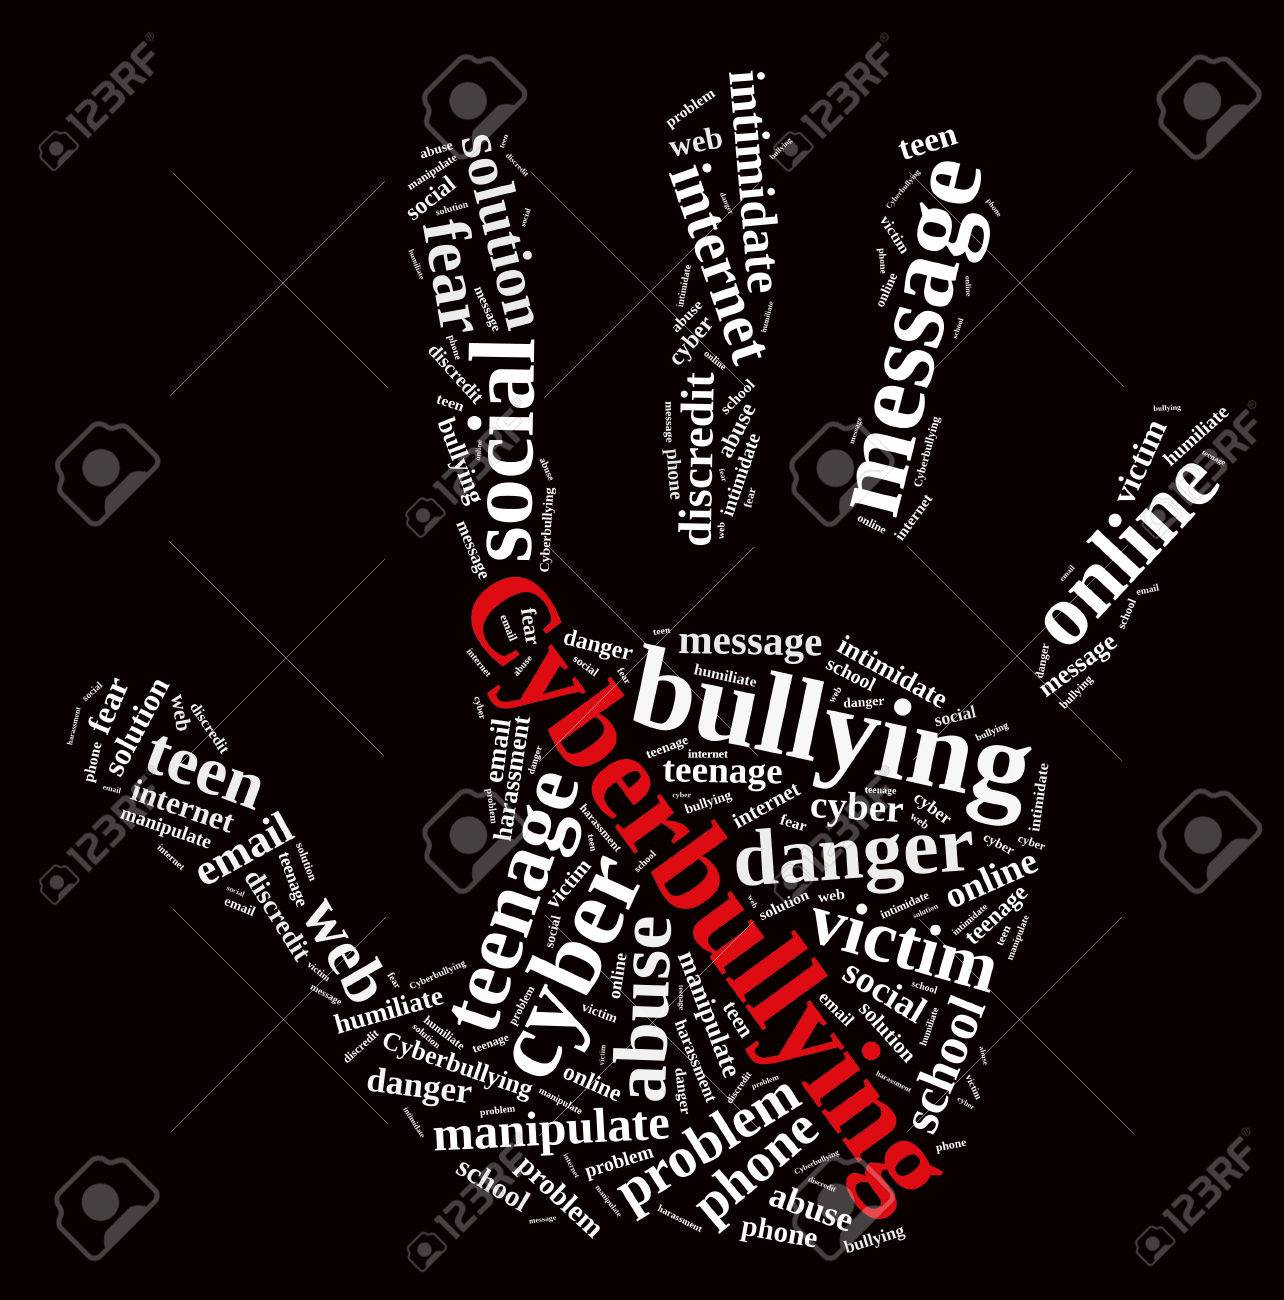 hight resolution of illustration with word cloud on cyberbullying